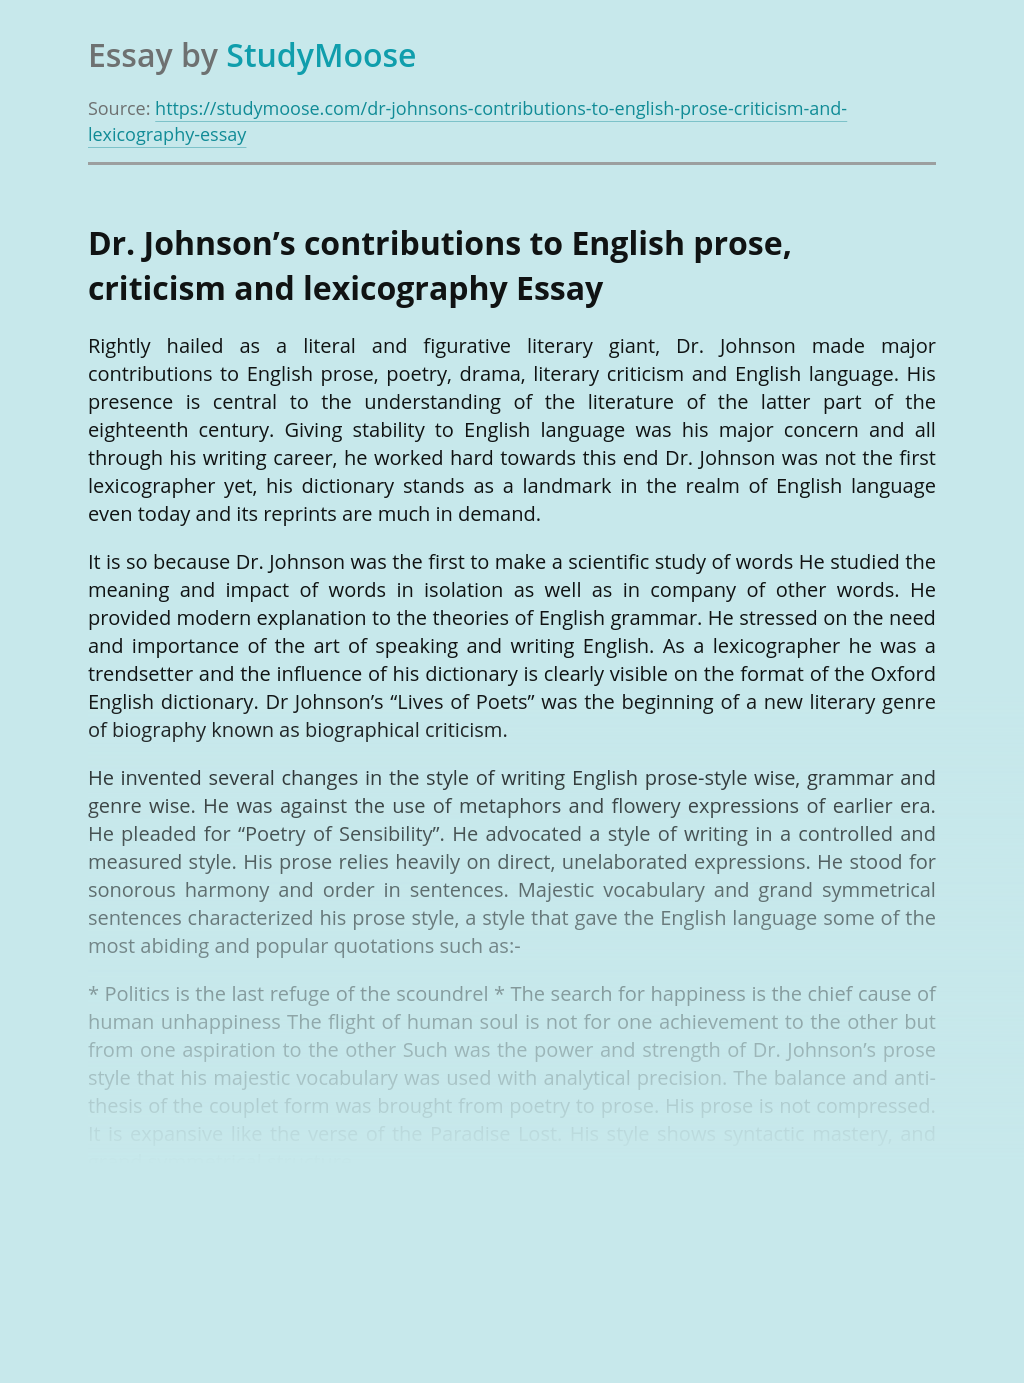 Dr. Johnson's contributions to English prose, criticism and lexicography